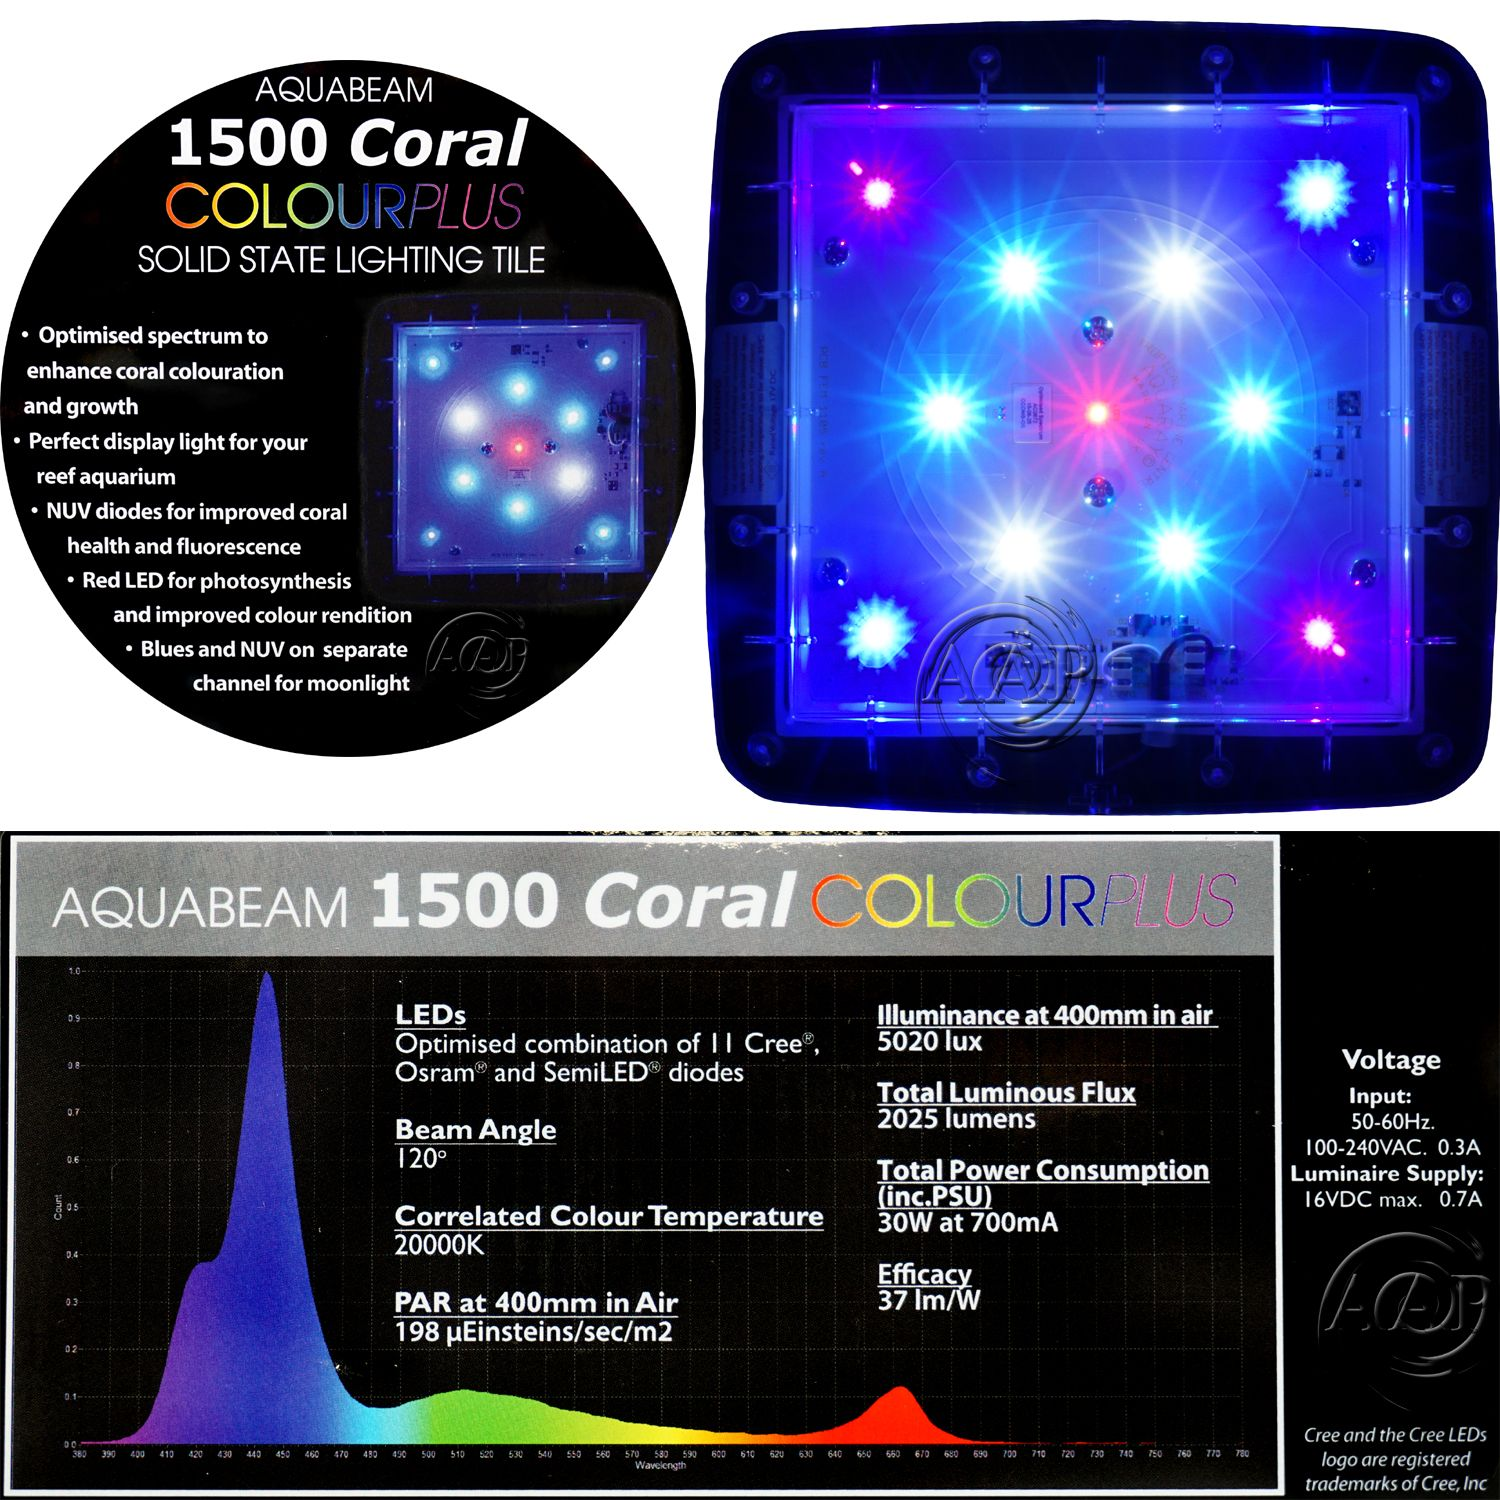 Wireless Dimmable Sunset Sunrise 90w Led Aquarium Light: The Coral Colour Plus Ultima Is An Over All Wide Angle 20K